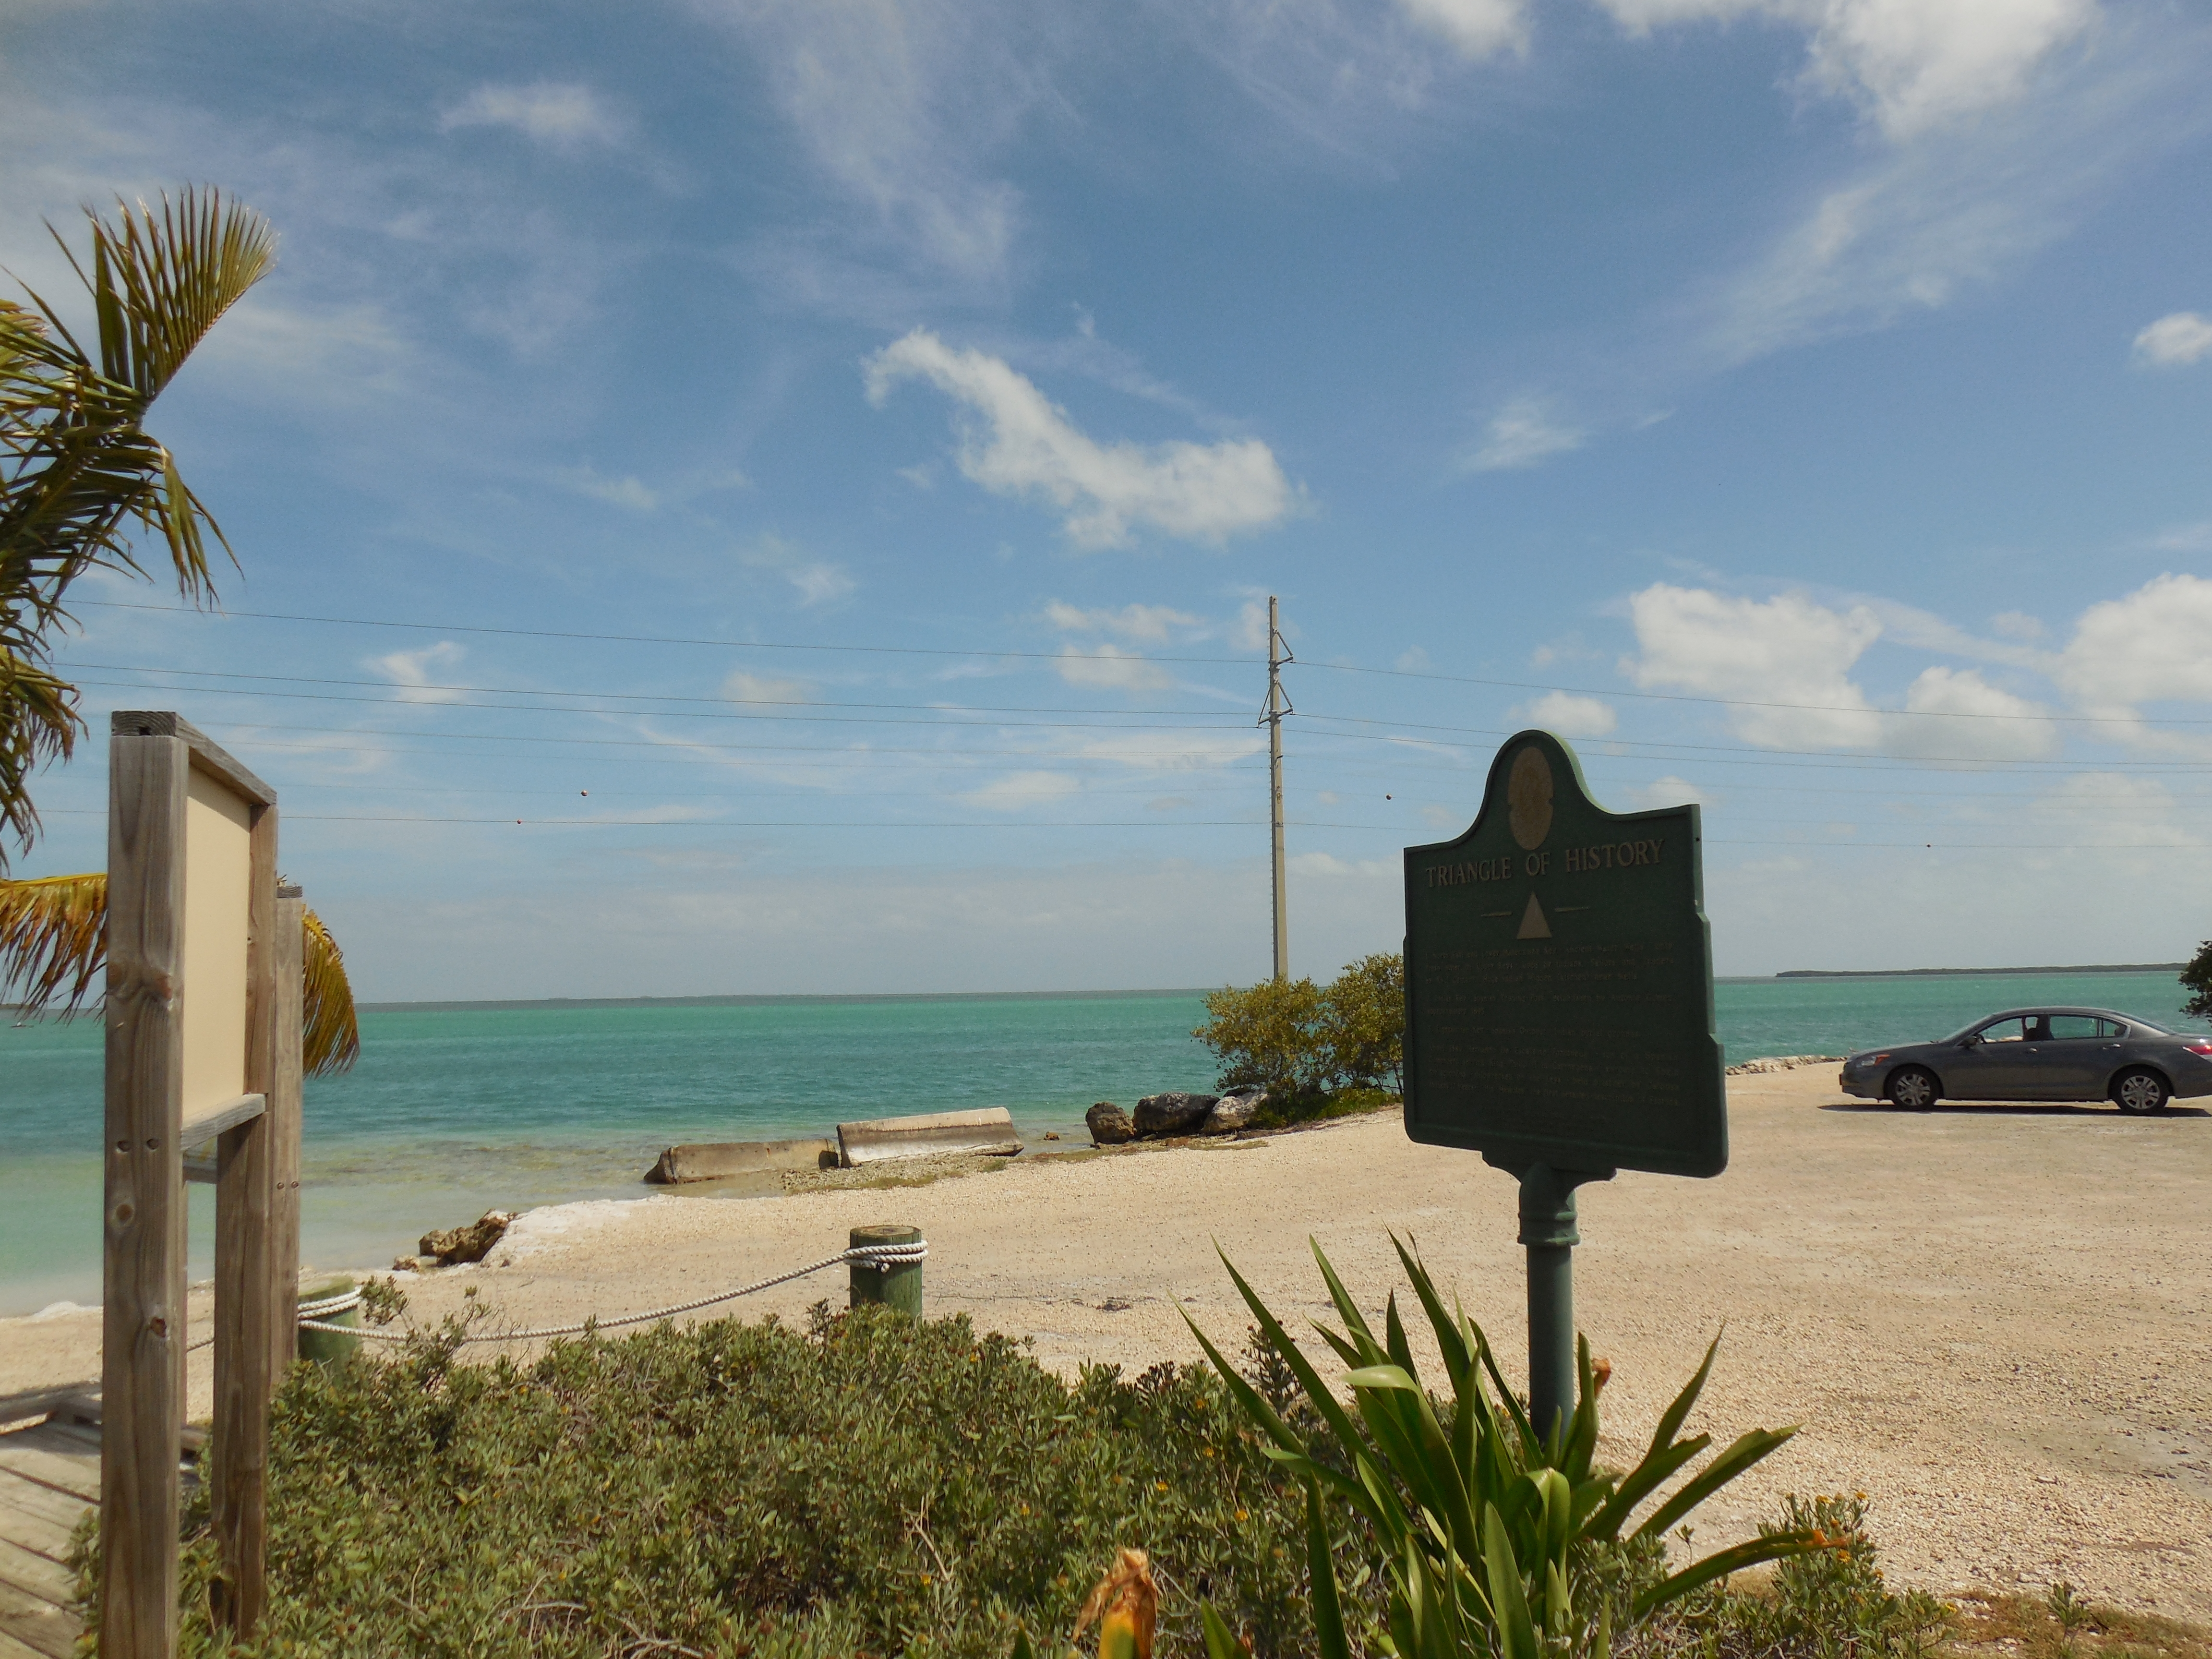 Marker is at a boat launch on the bayside of Overseas Highway.